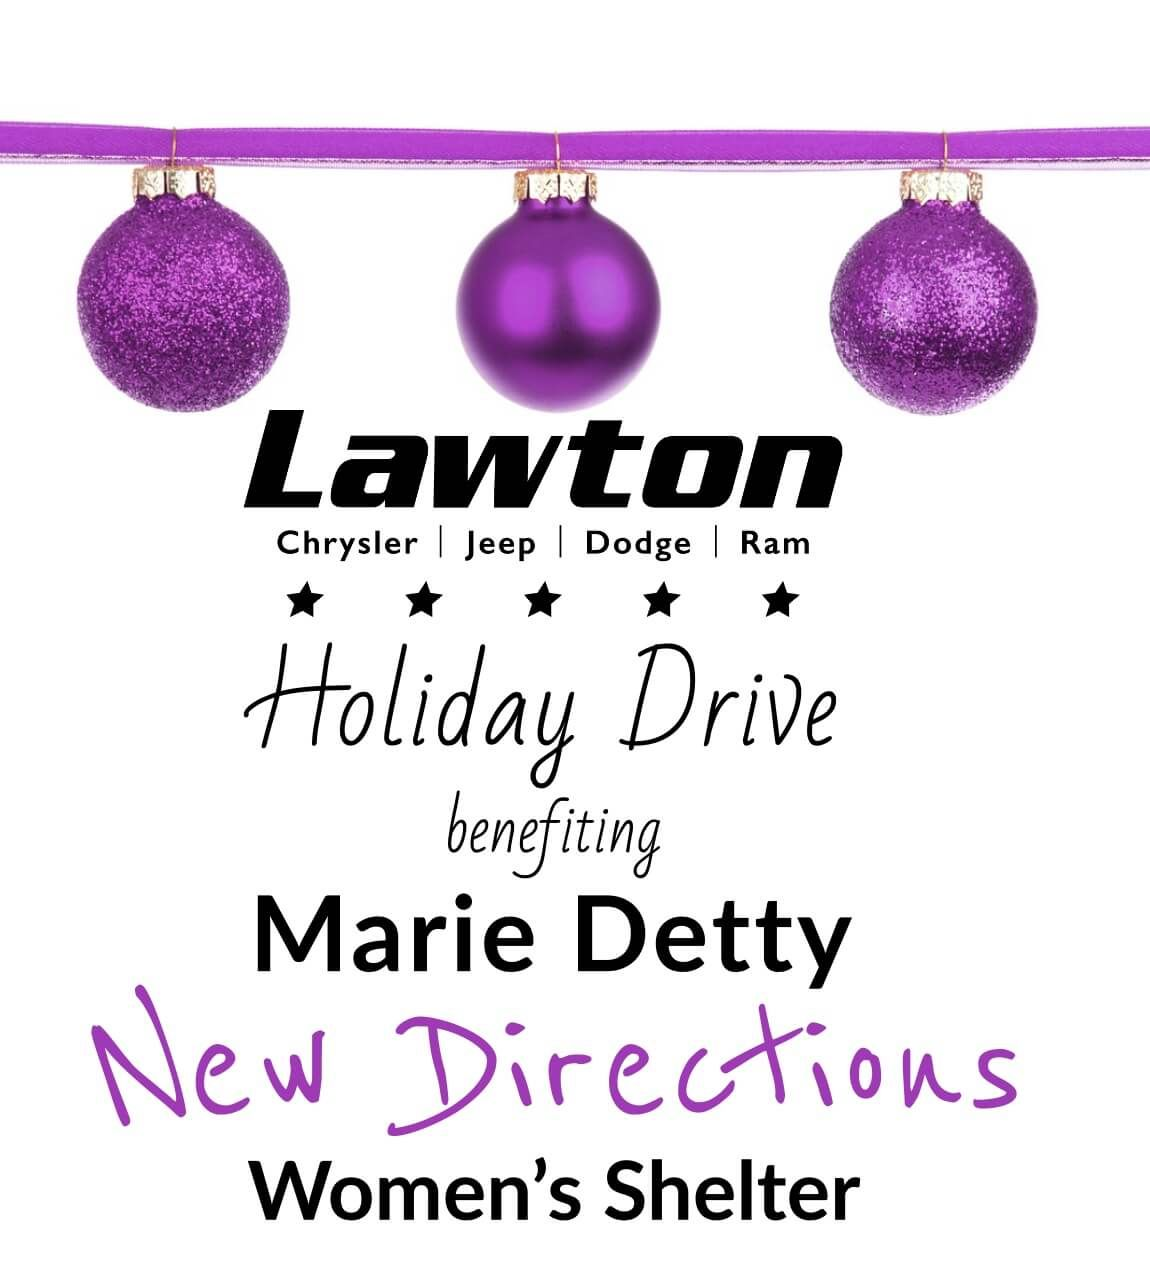 New Directions Women S Shelter Donation Drive Chrysler Jeep Jeep Dodge Donation Drive